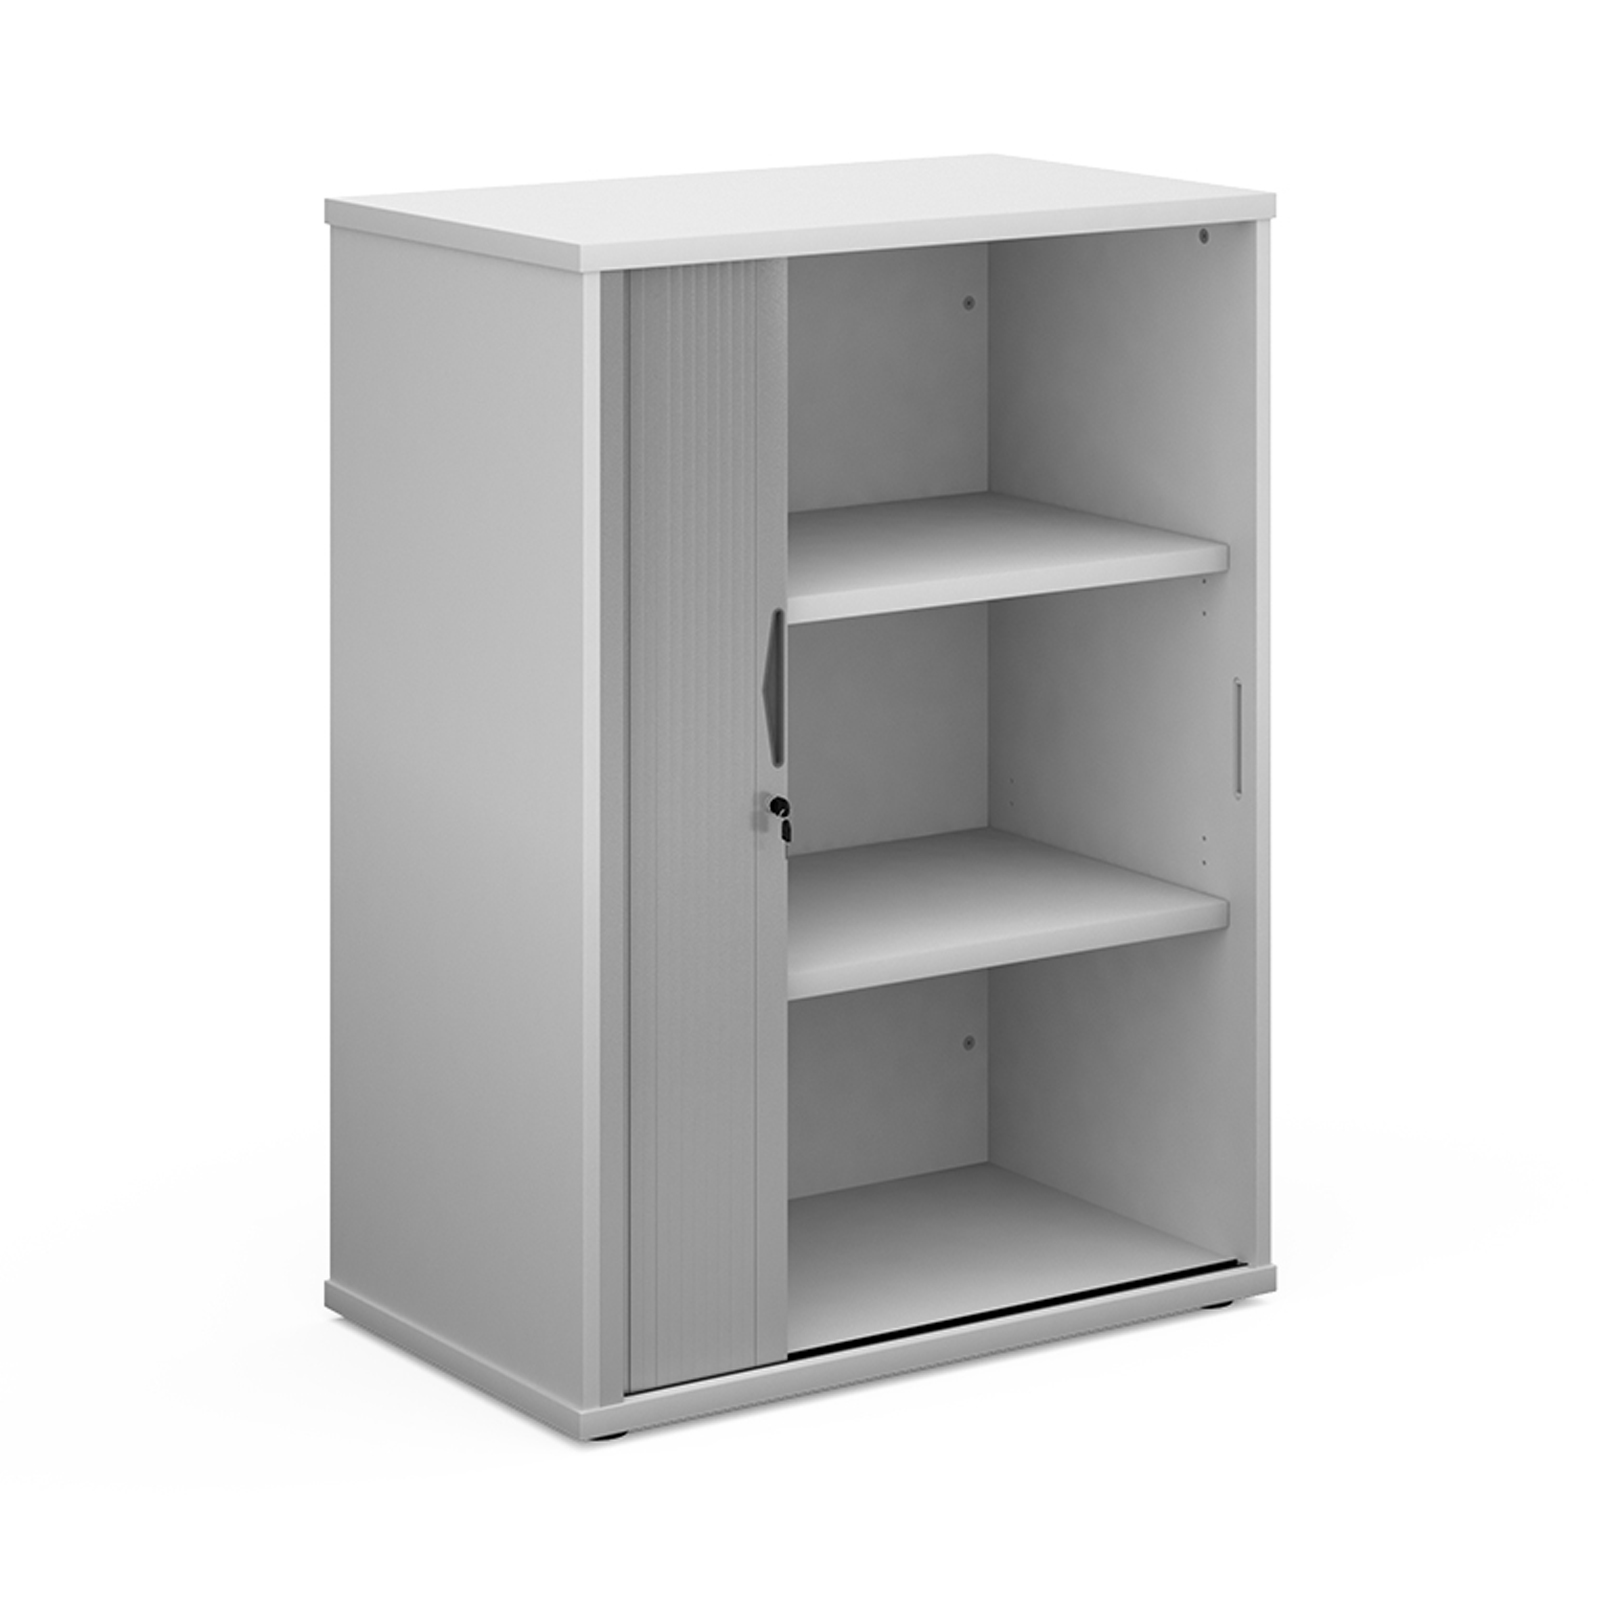 Universal single door tambour cupboard 1090mm high with 2 shelves - white with silver door